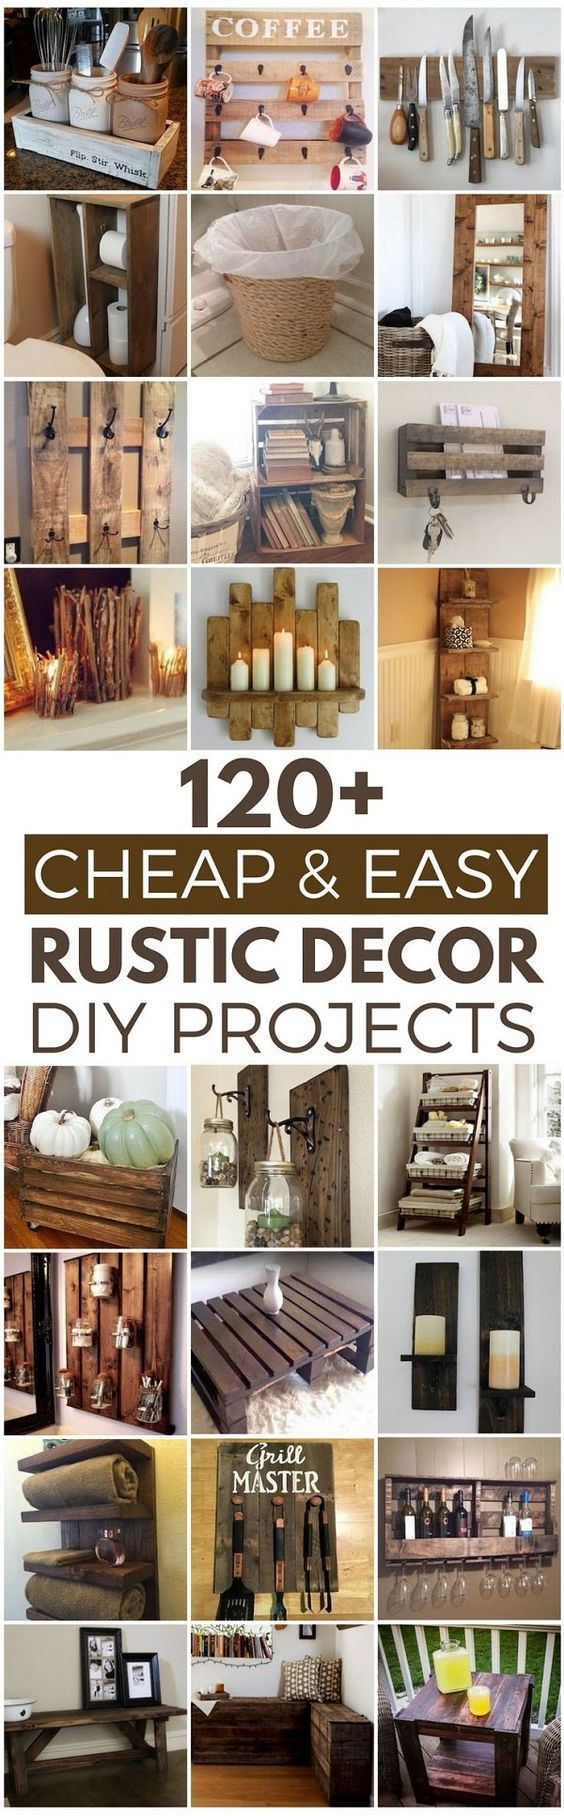 These 120 Easy Diy Ideas Will Make Your Home Look Rustic On A Budget